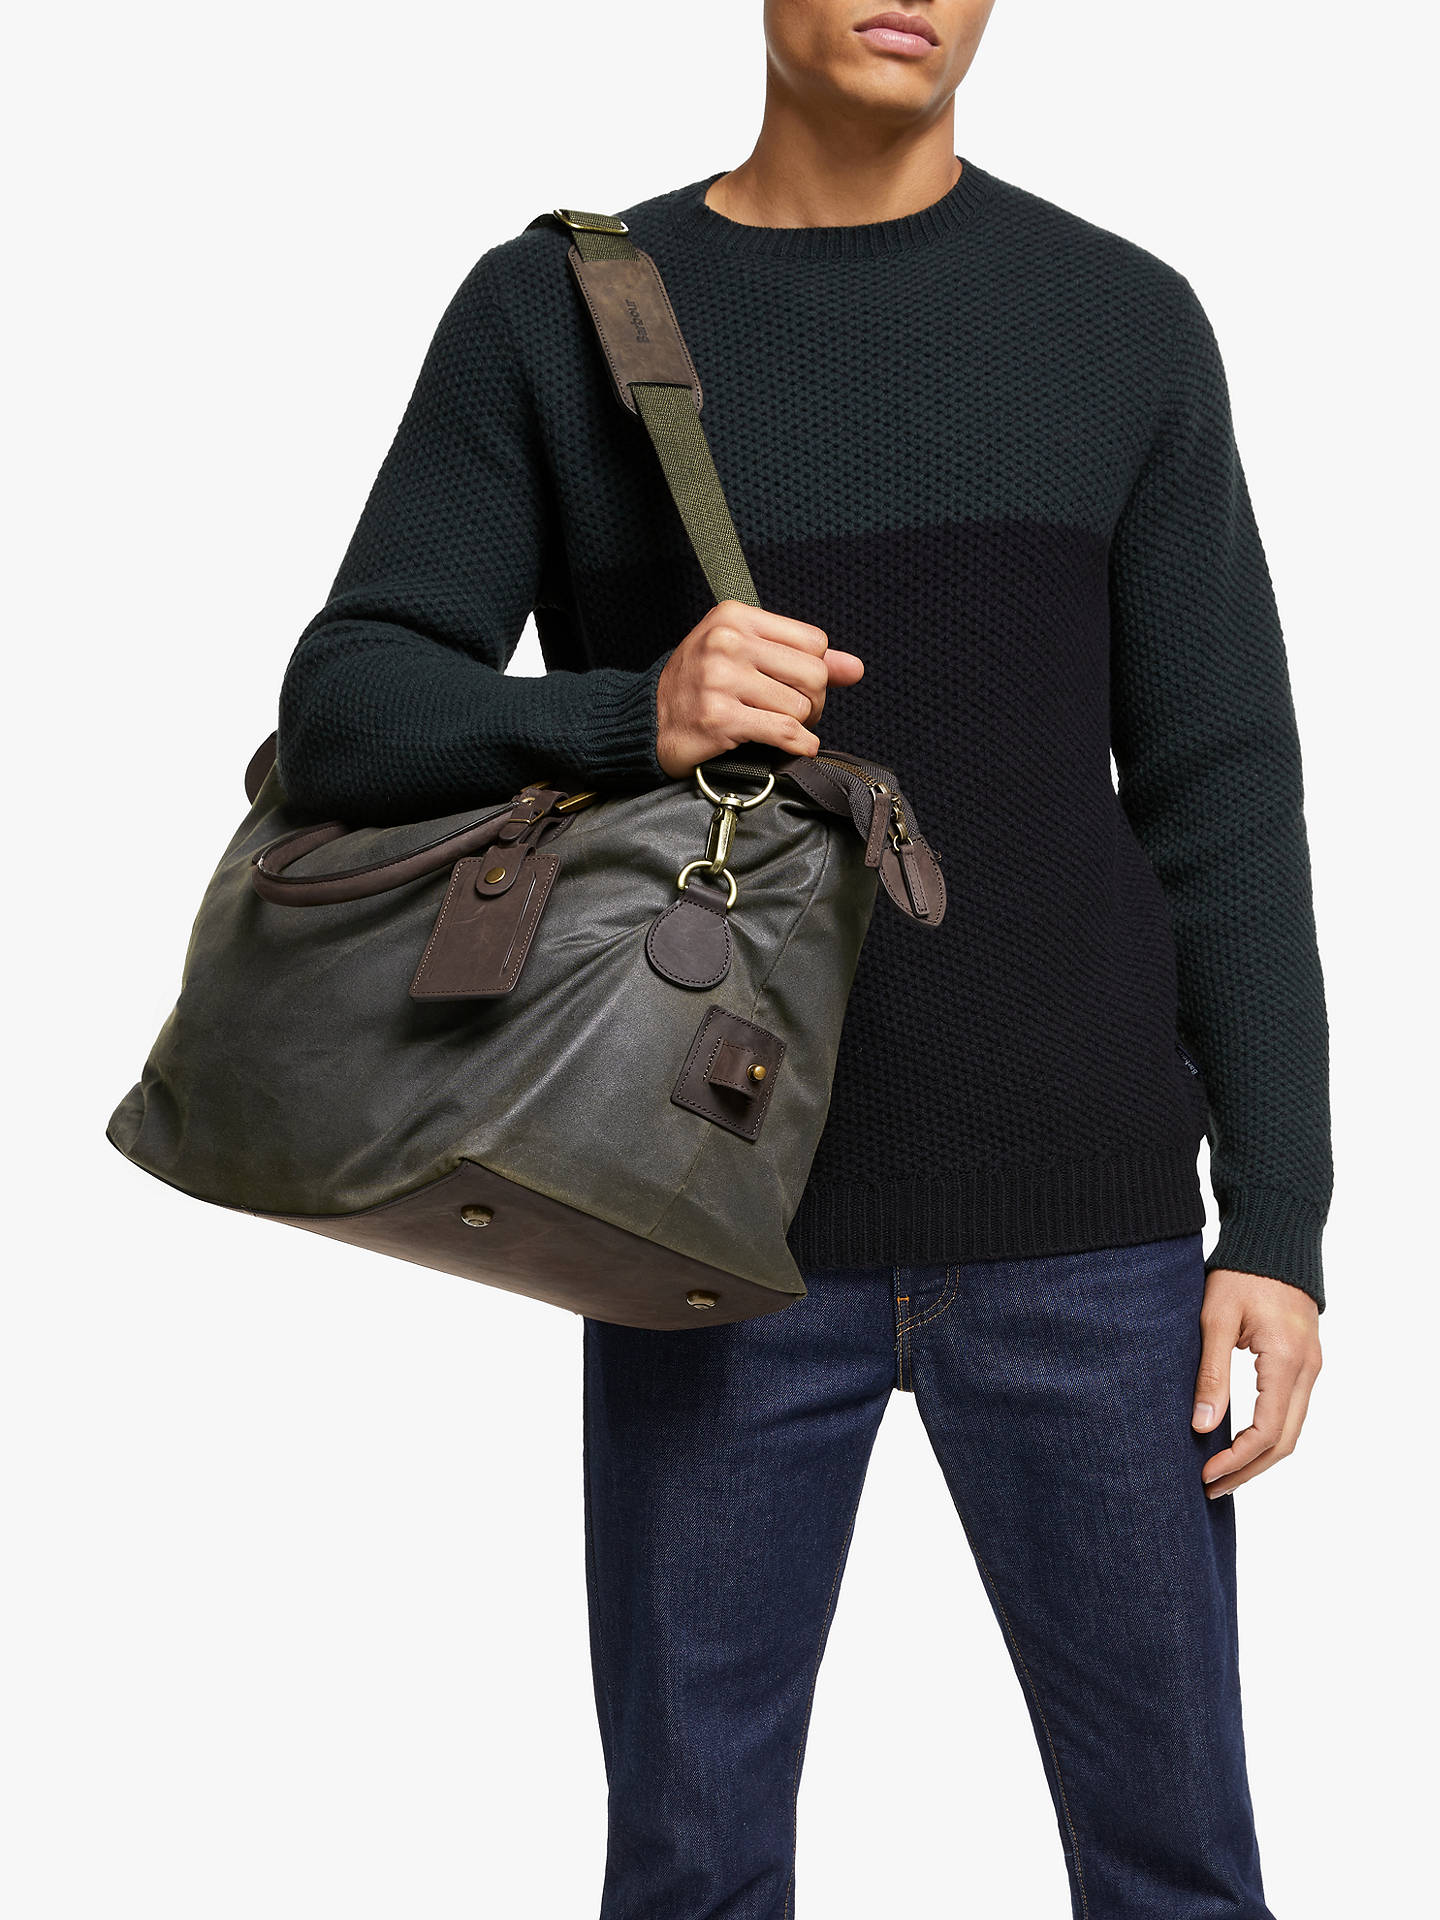 BuyBarbour Wax Cotton Travel Explorer Holdall, Olive Online at johnlewis.com